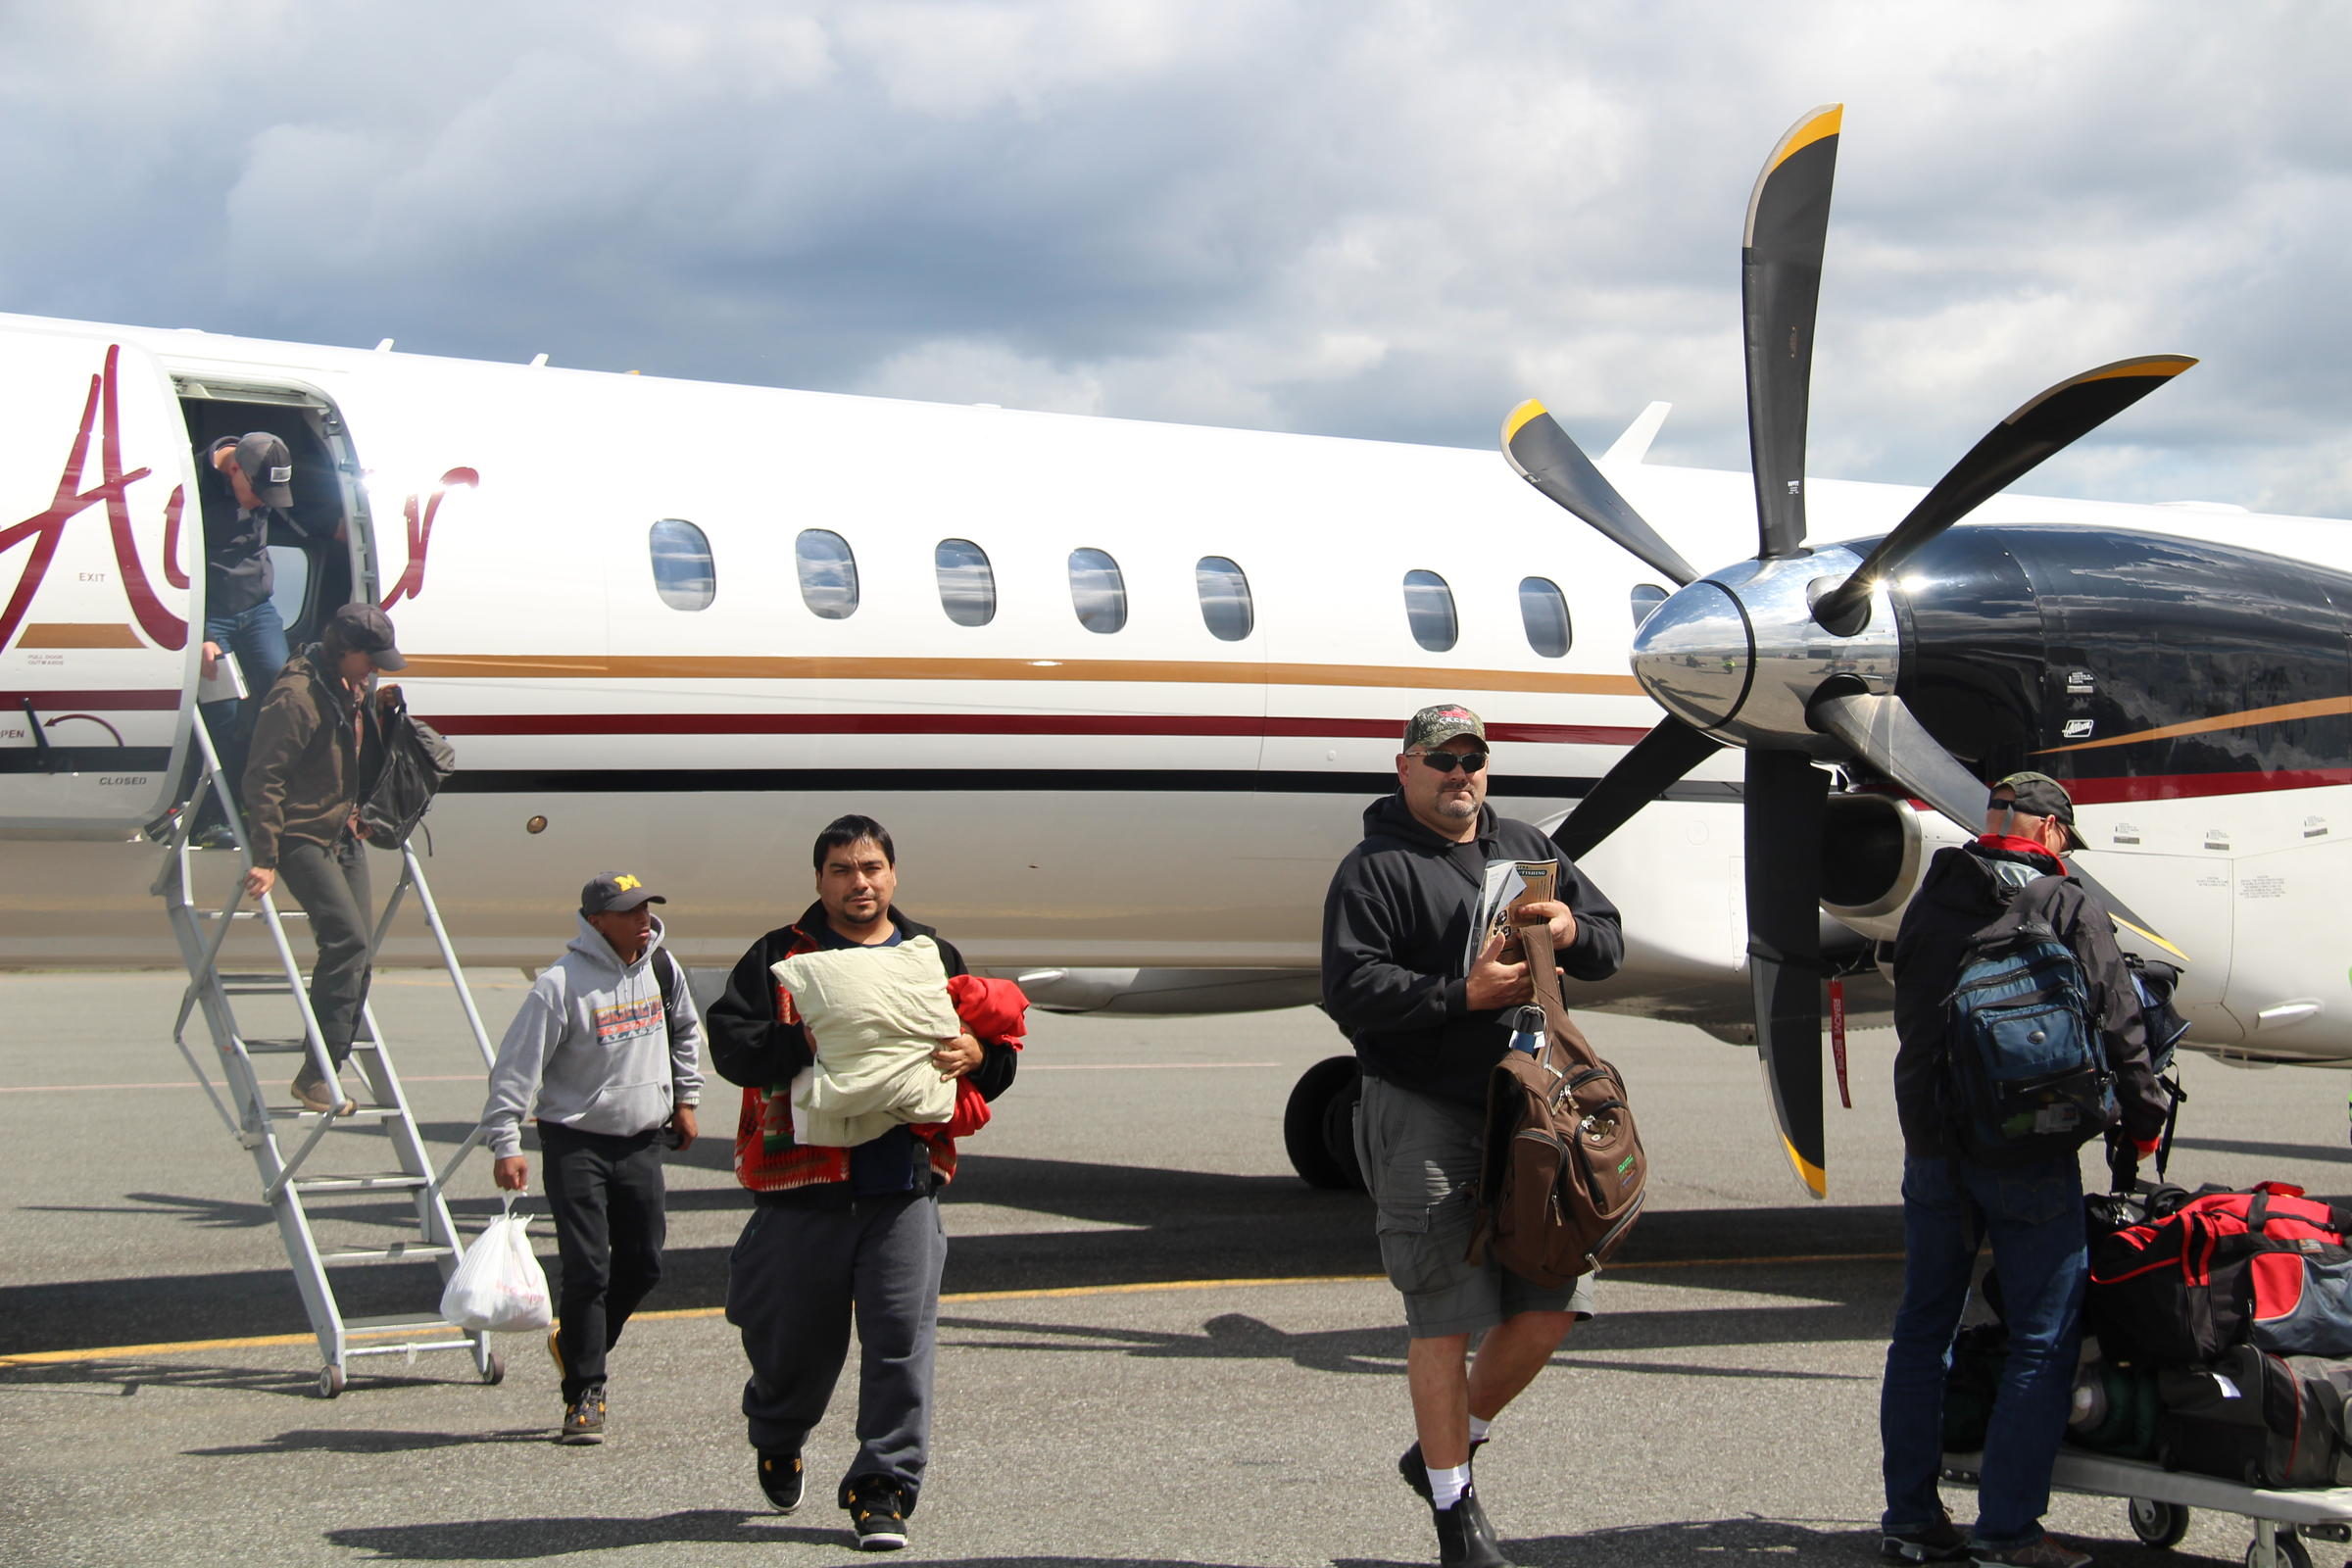 PenAir customers coming into Bristol Bay for the summer, deplaning one of the new Saab 2000s in King Salmon in June. (Photo by KDLG)